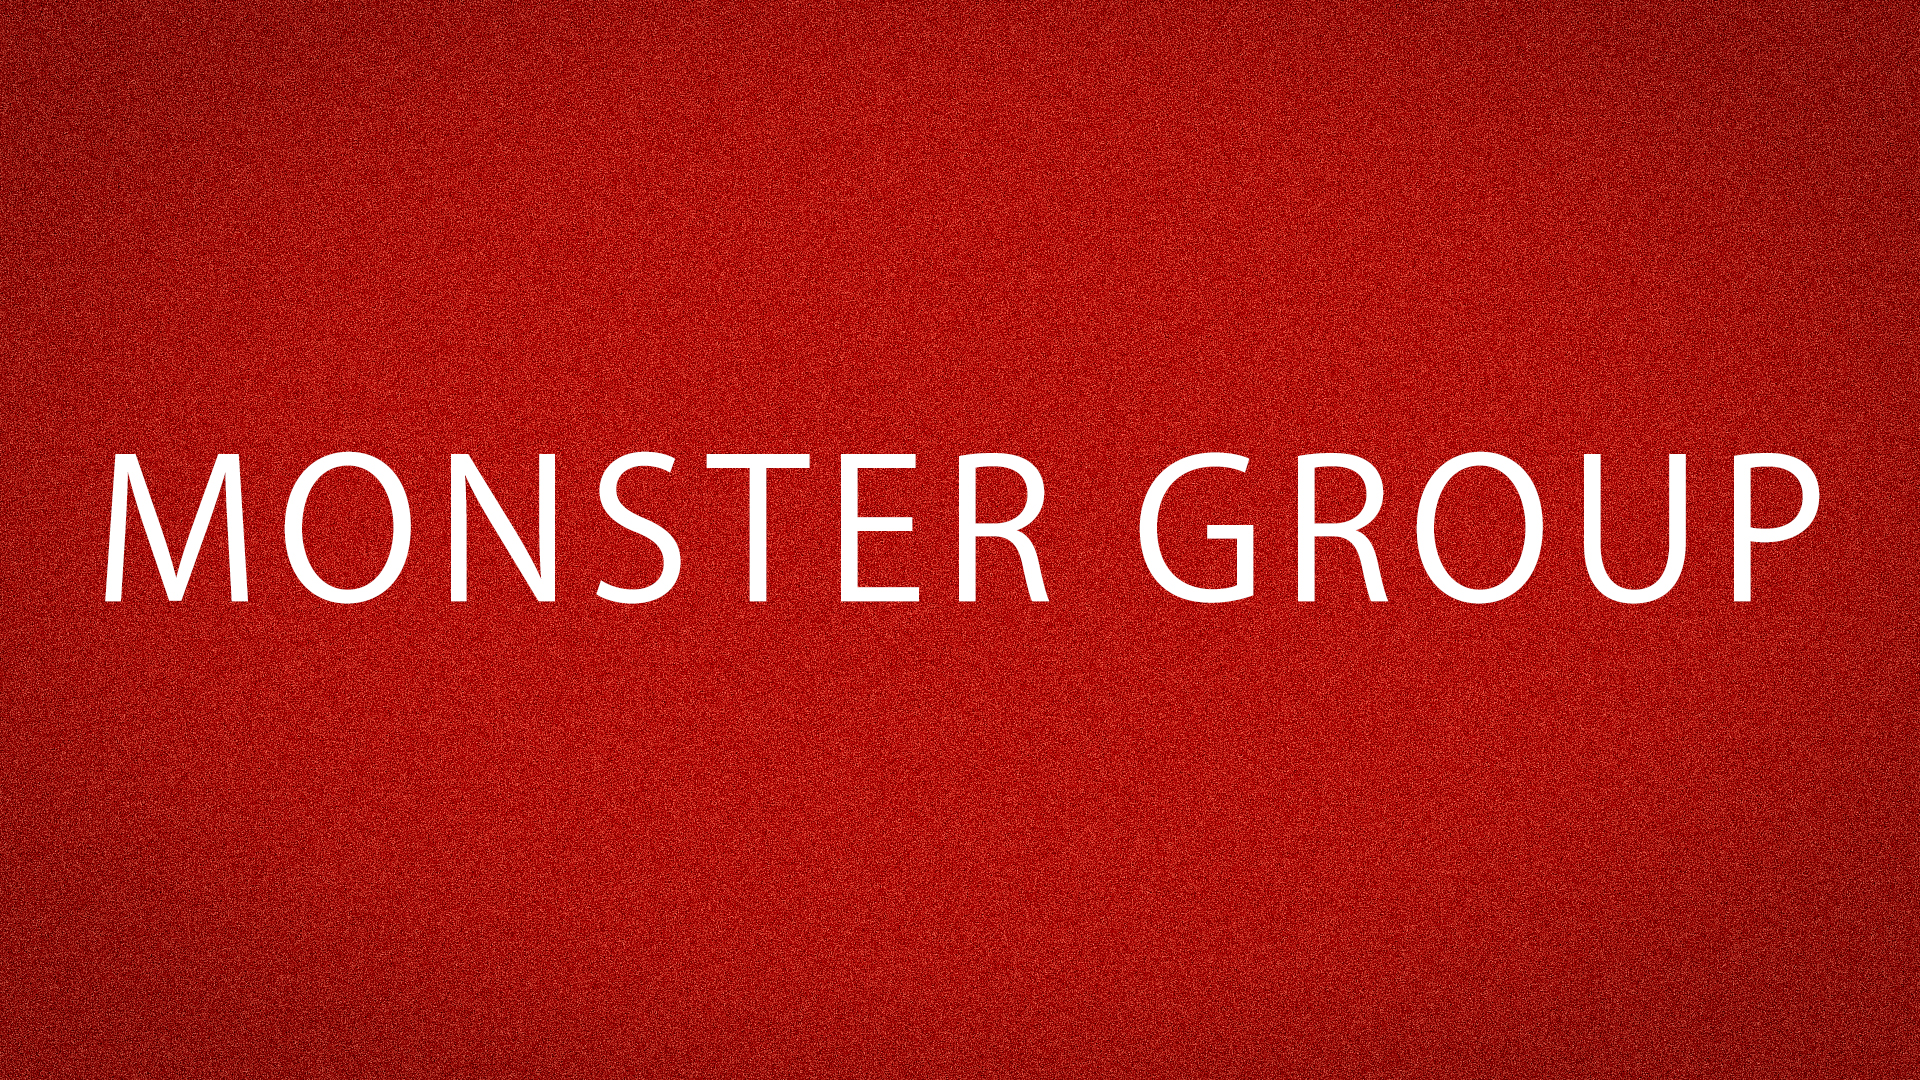 MONSTERGROUP